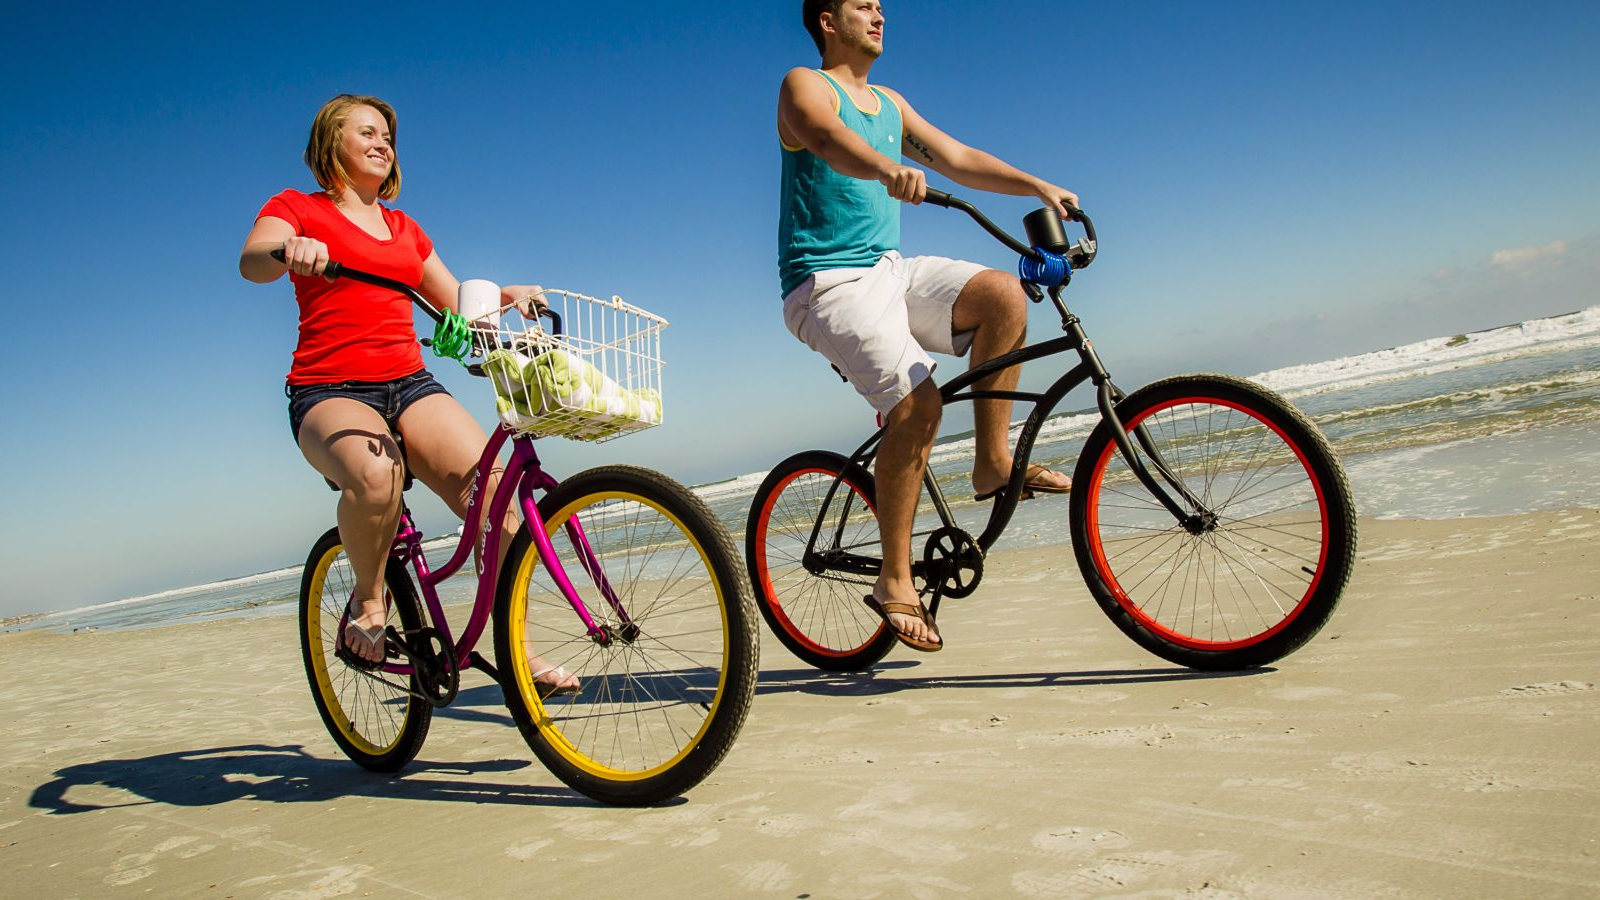 beach bike ride_edited.jpg